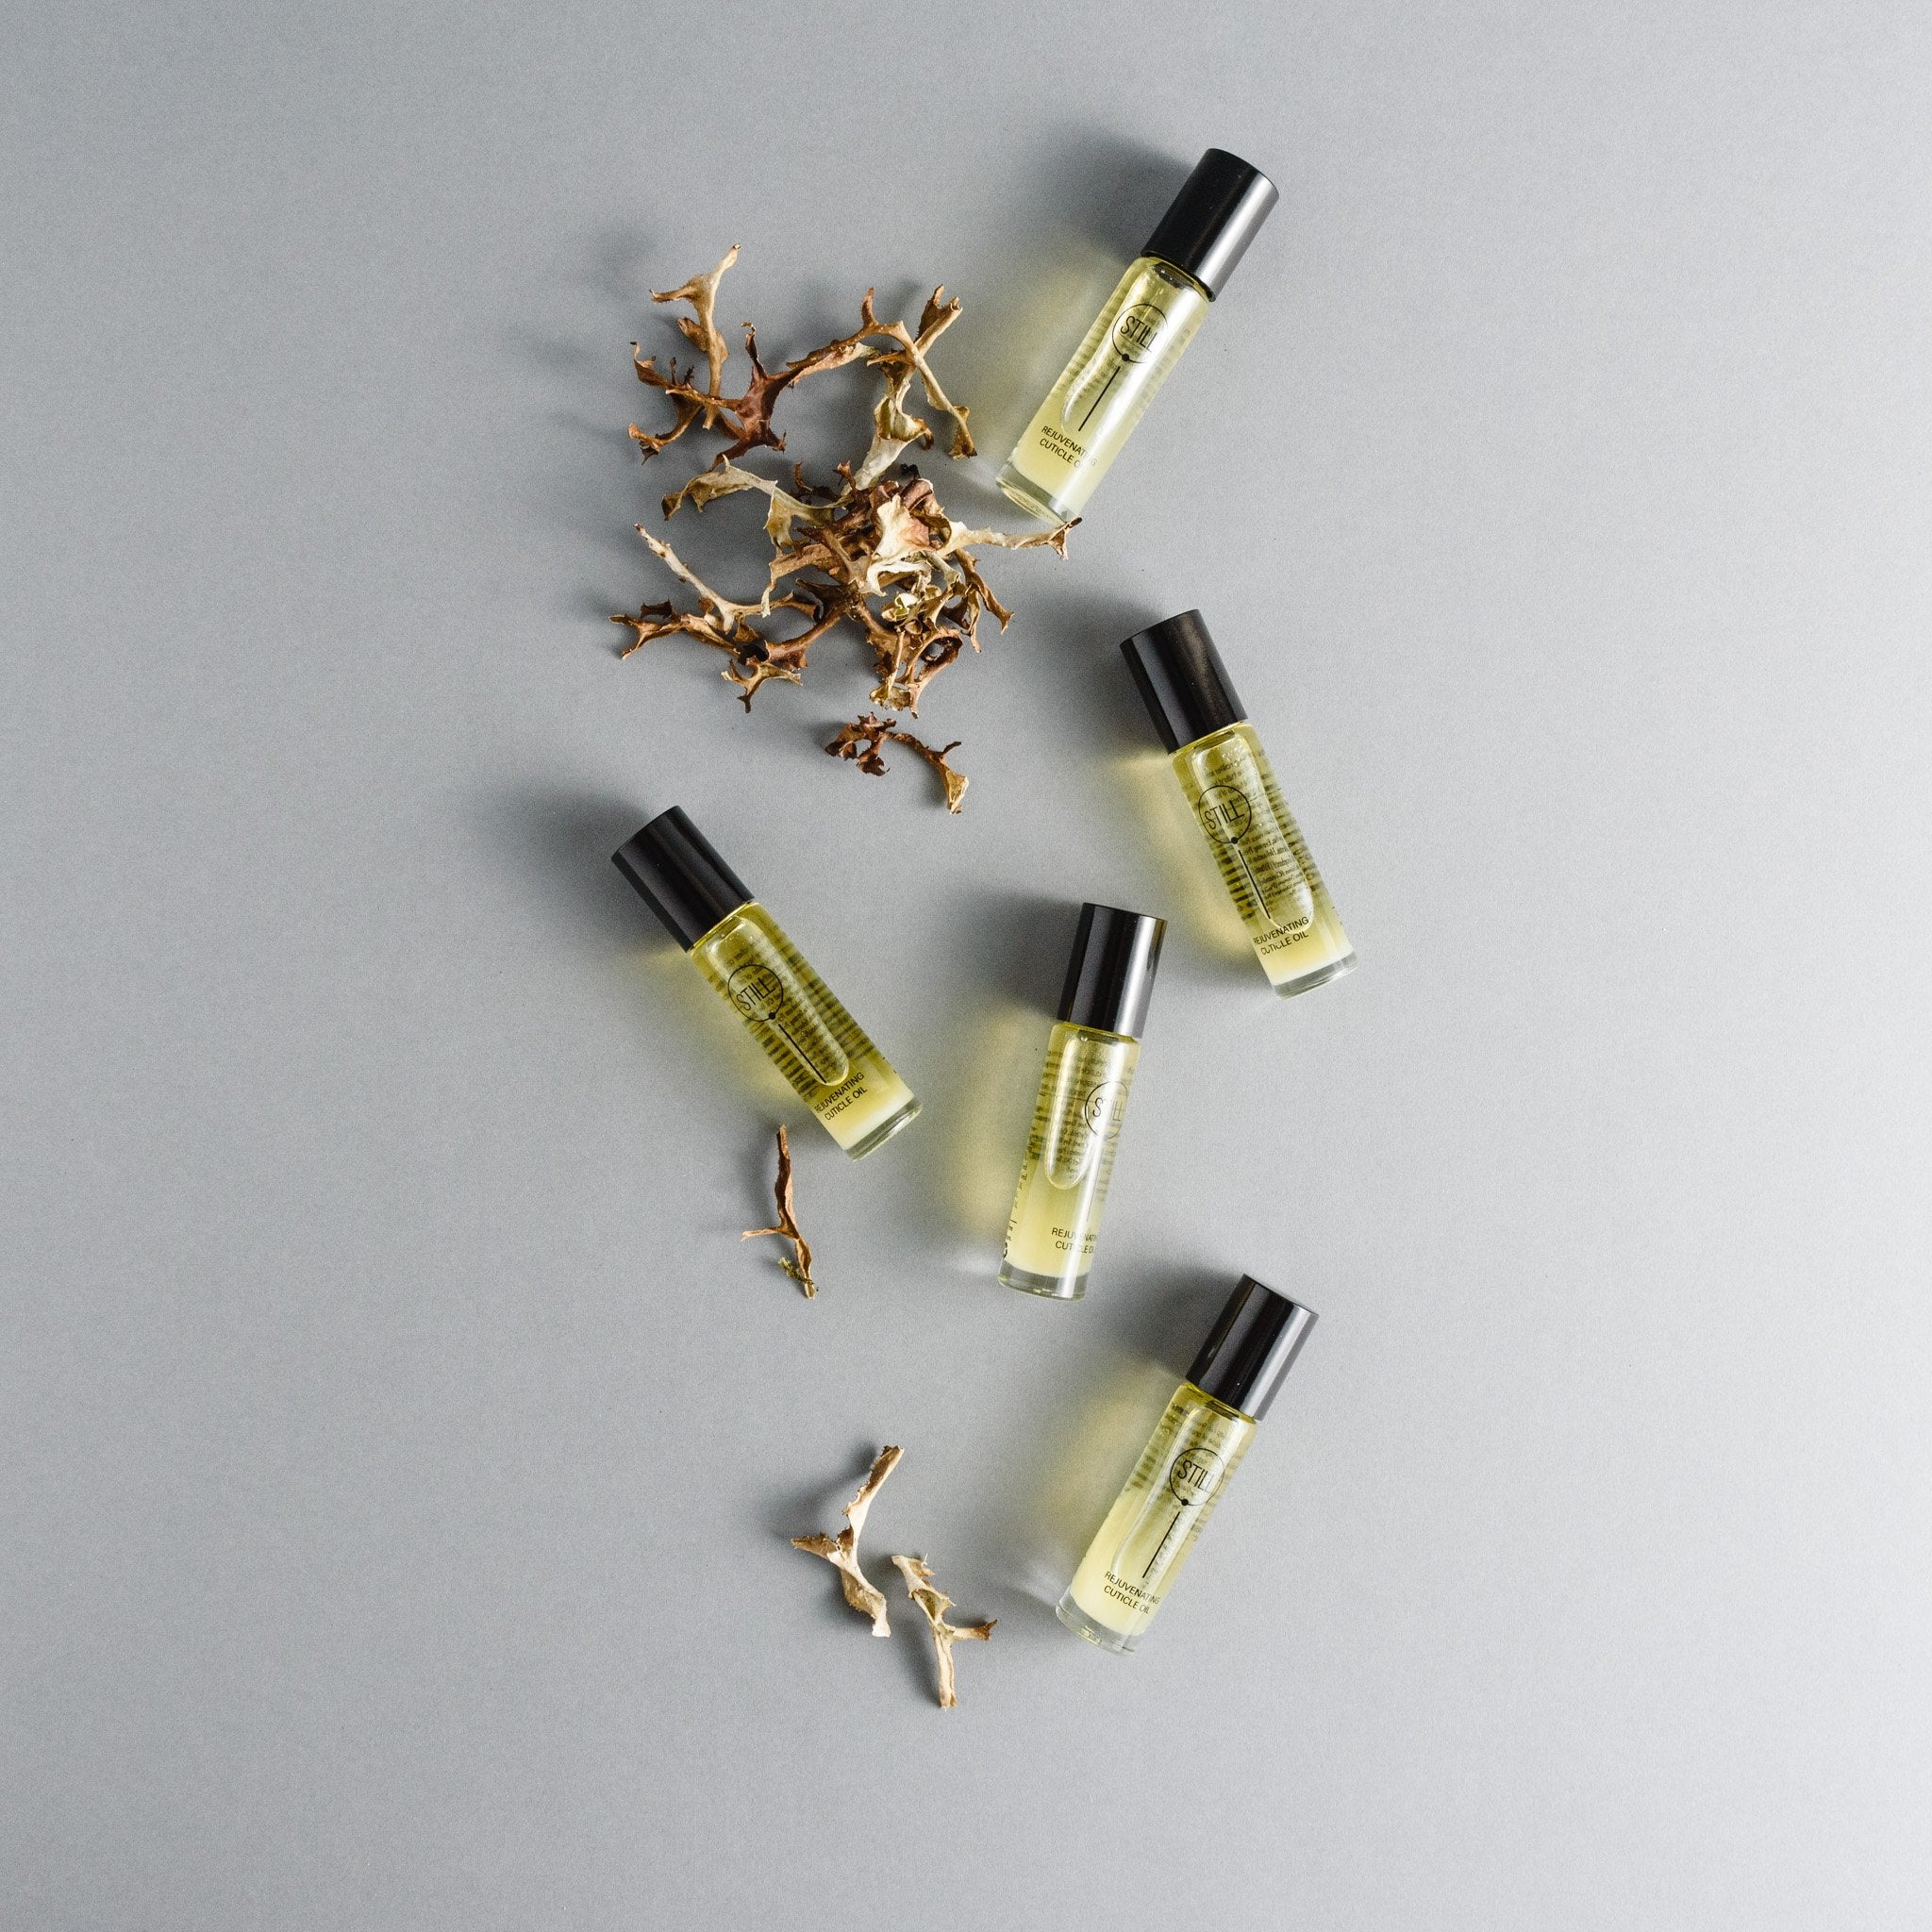 STILL-LONDON NATURAL CUTICLE OIL